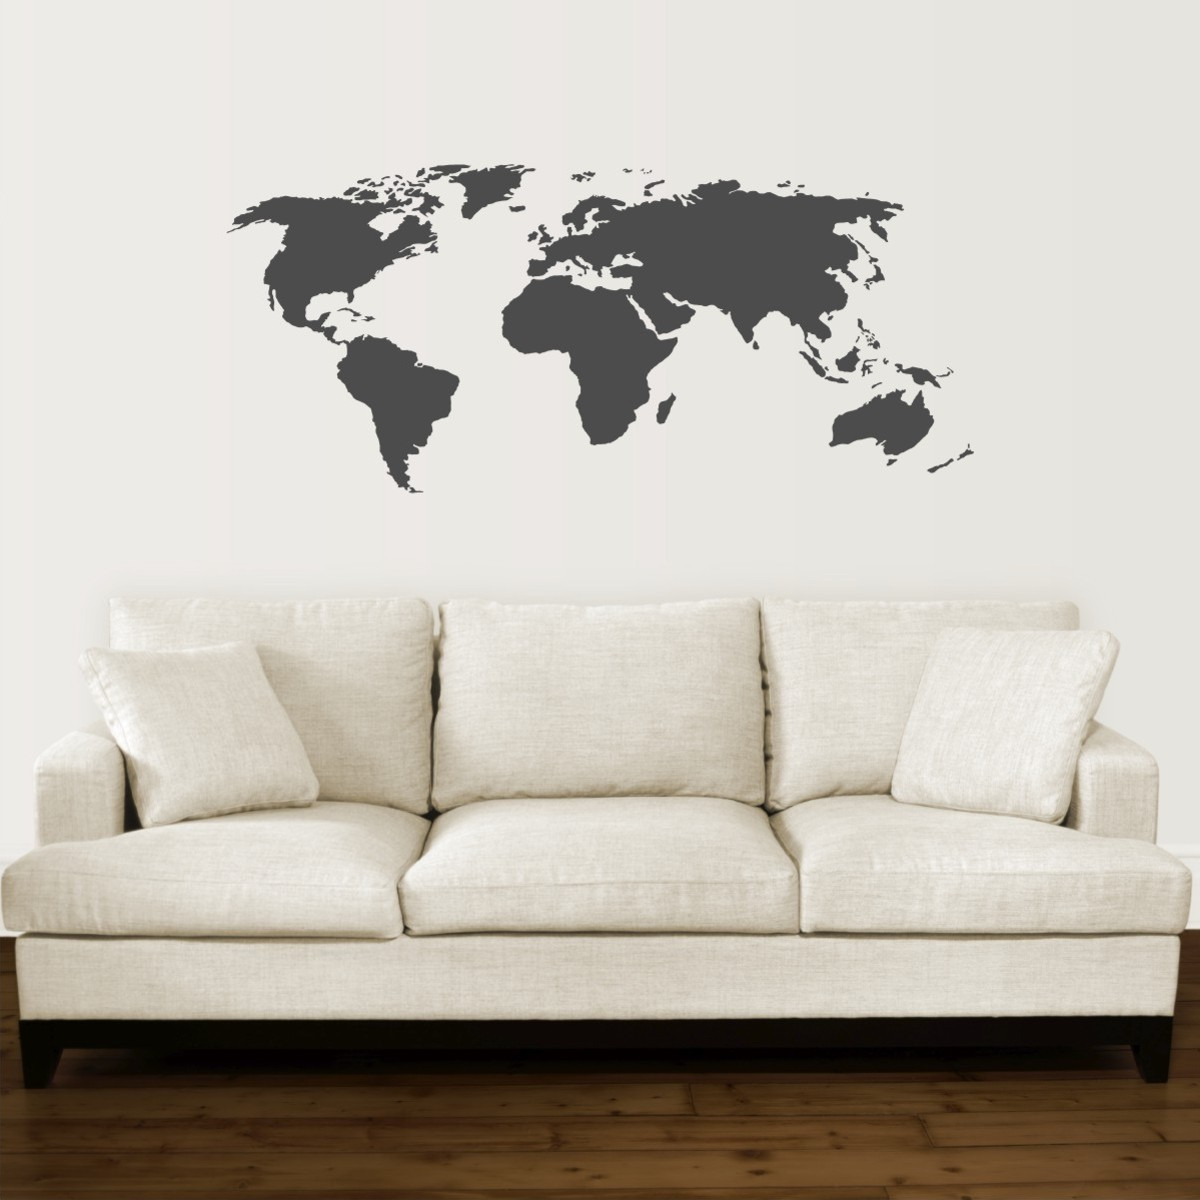 17 cool ideas for world map wall art live diy ideas gumiabroncs Image collections